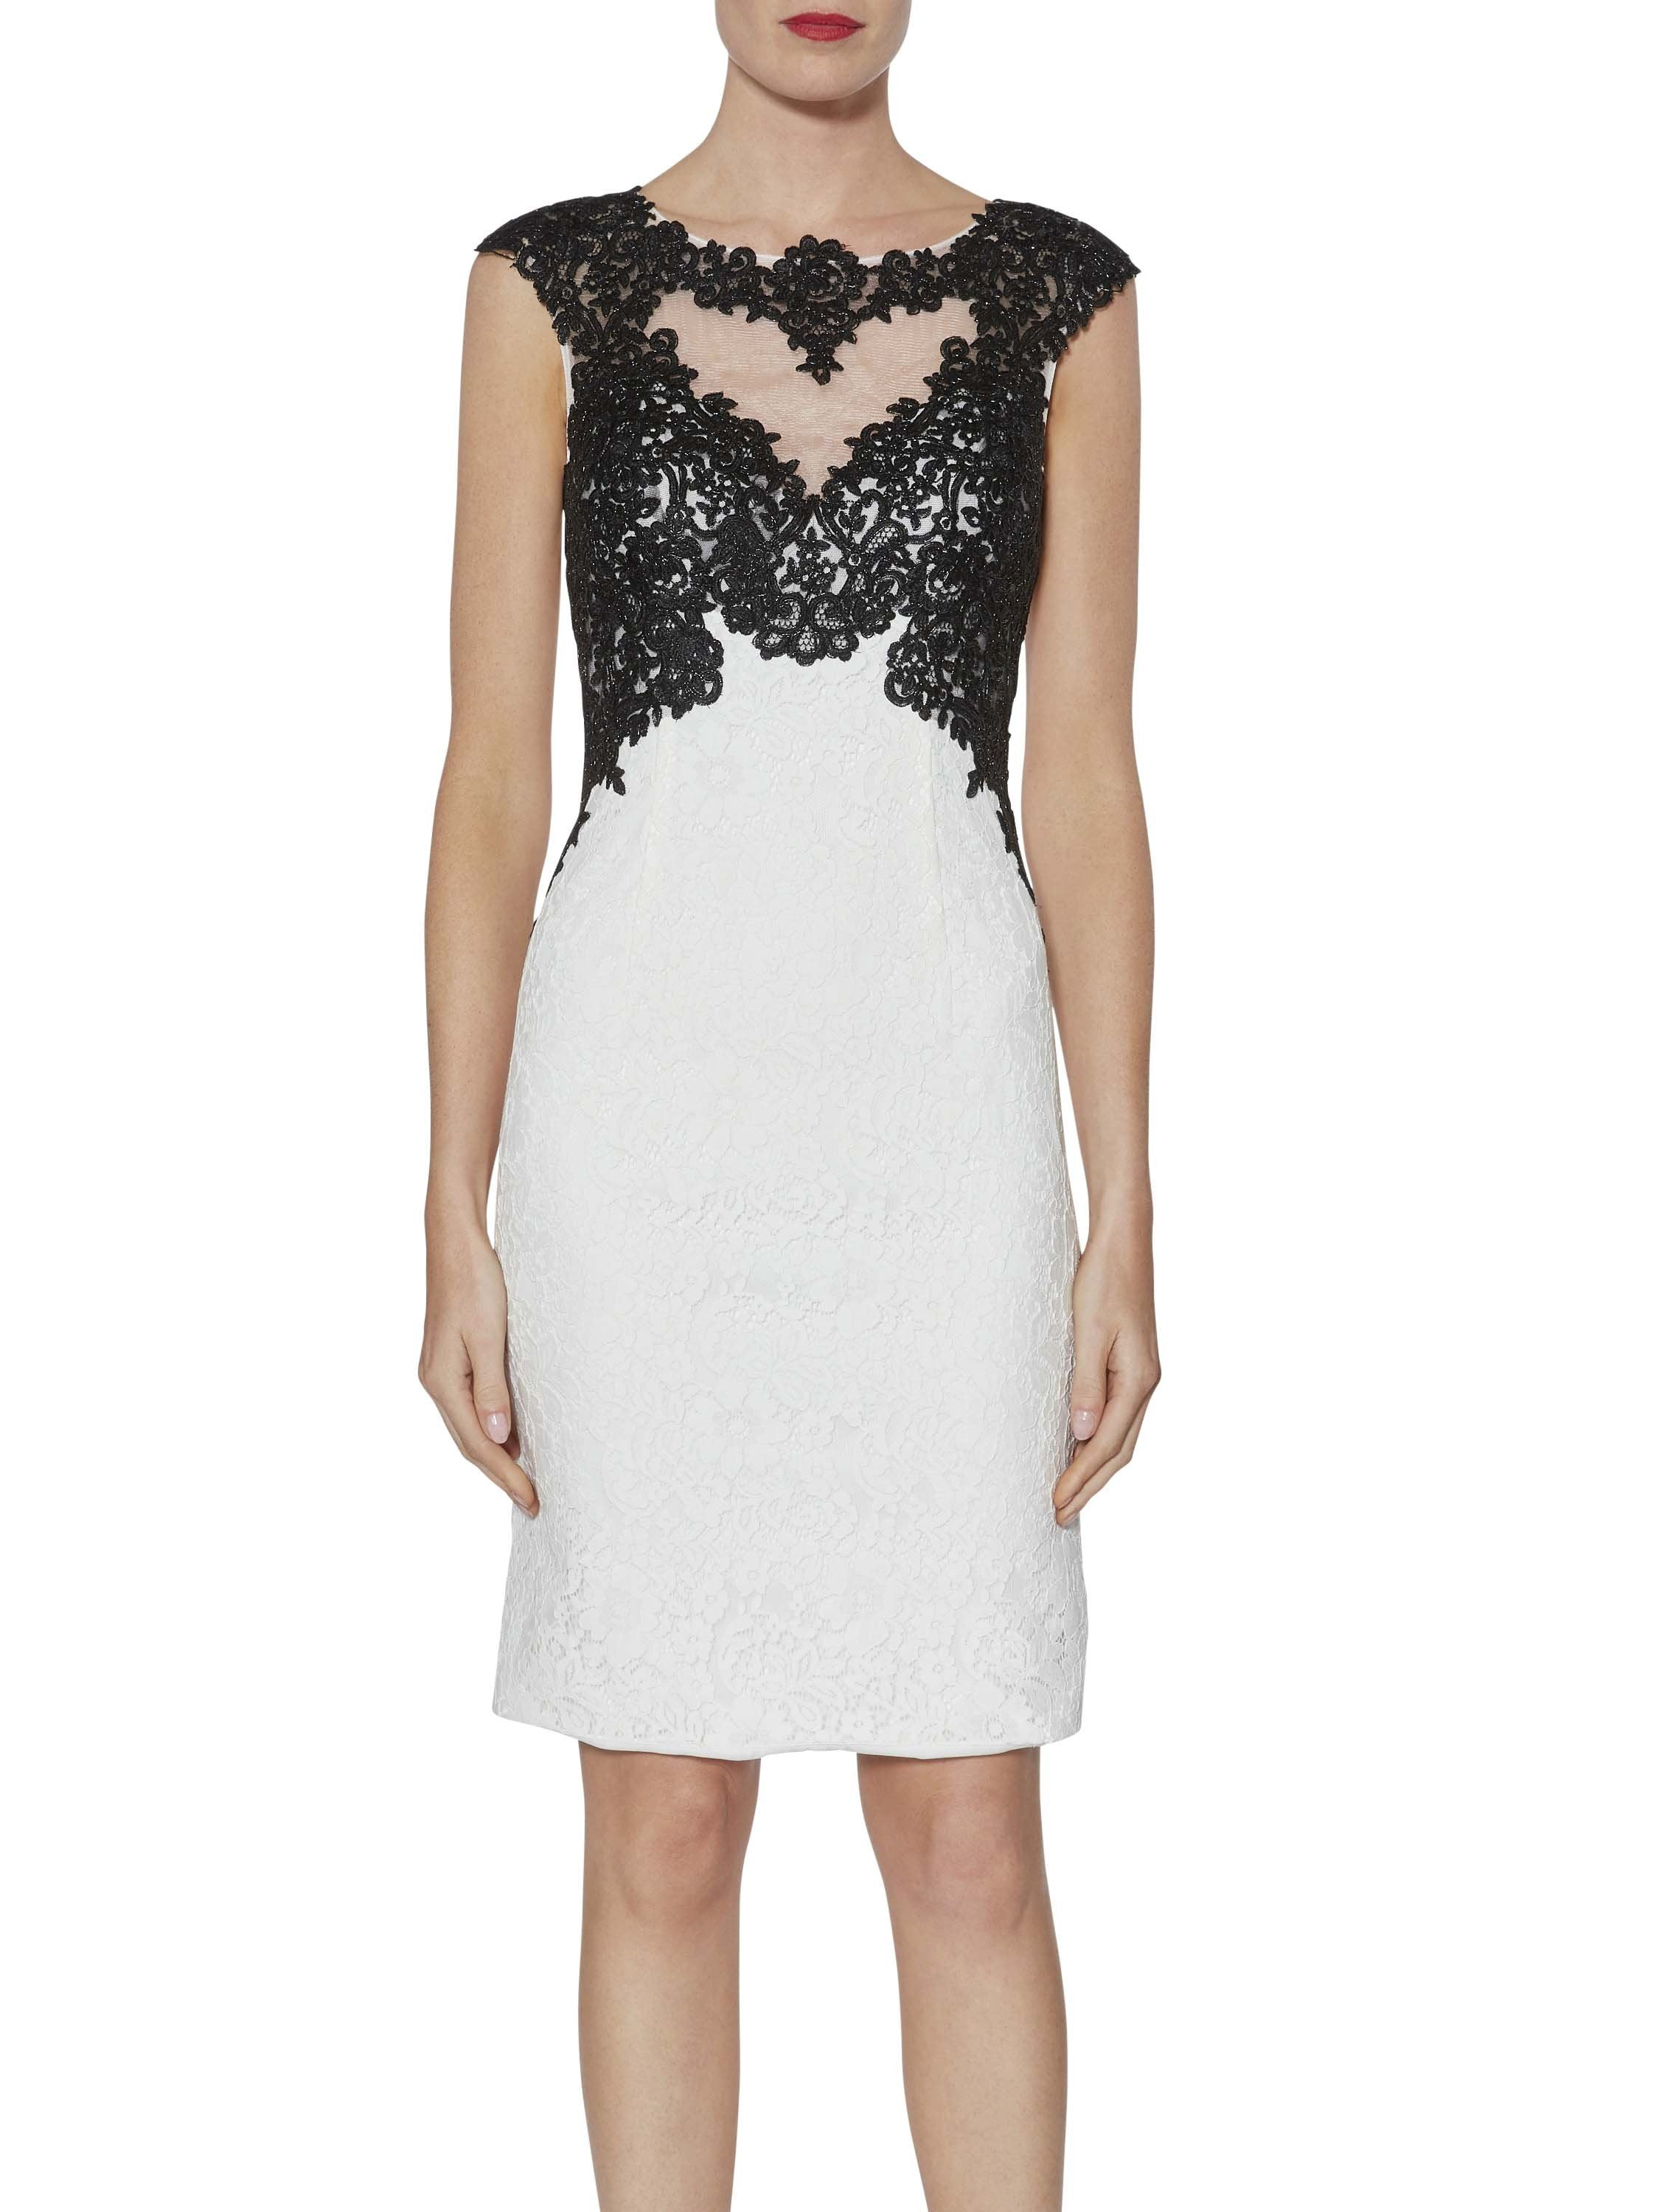 Gina Bacconi White/Black Tallulah Contrast Lace Dress